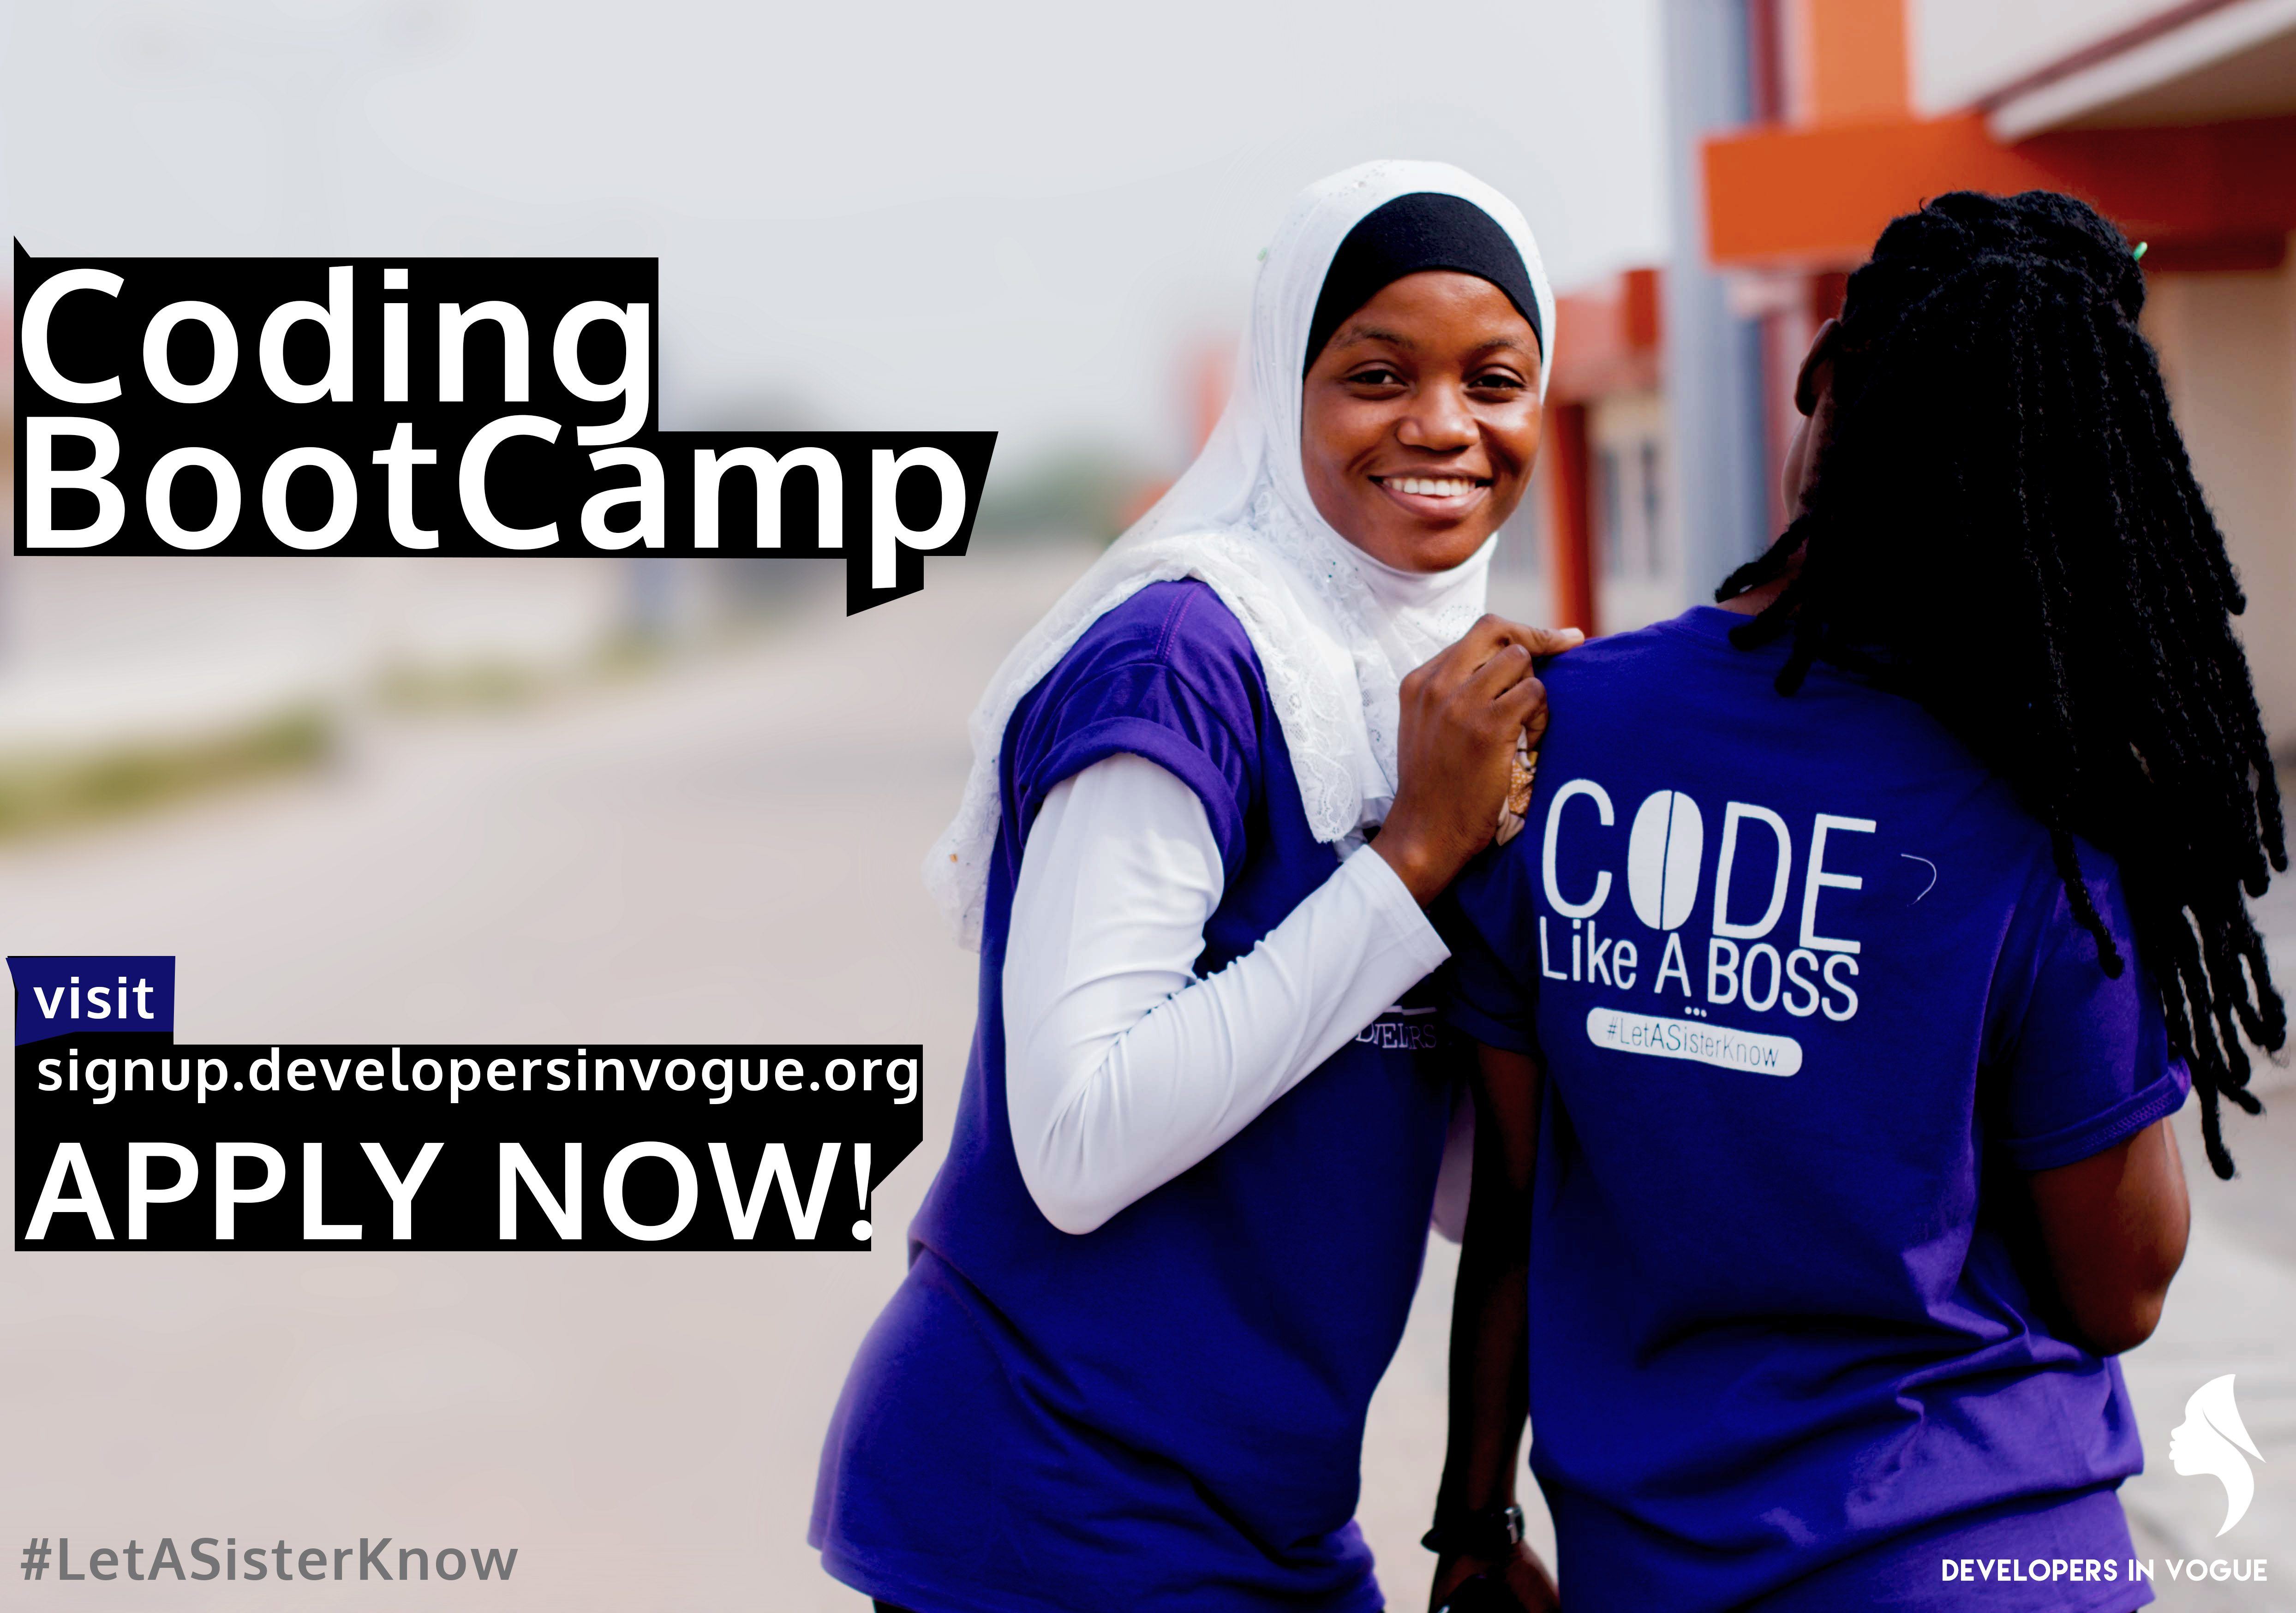 Developers In Vogue Coding Bootcamp 2018 for Ghanaian